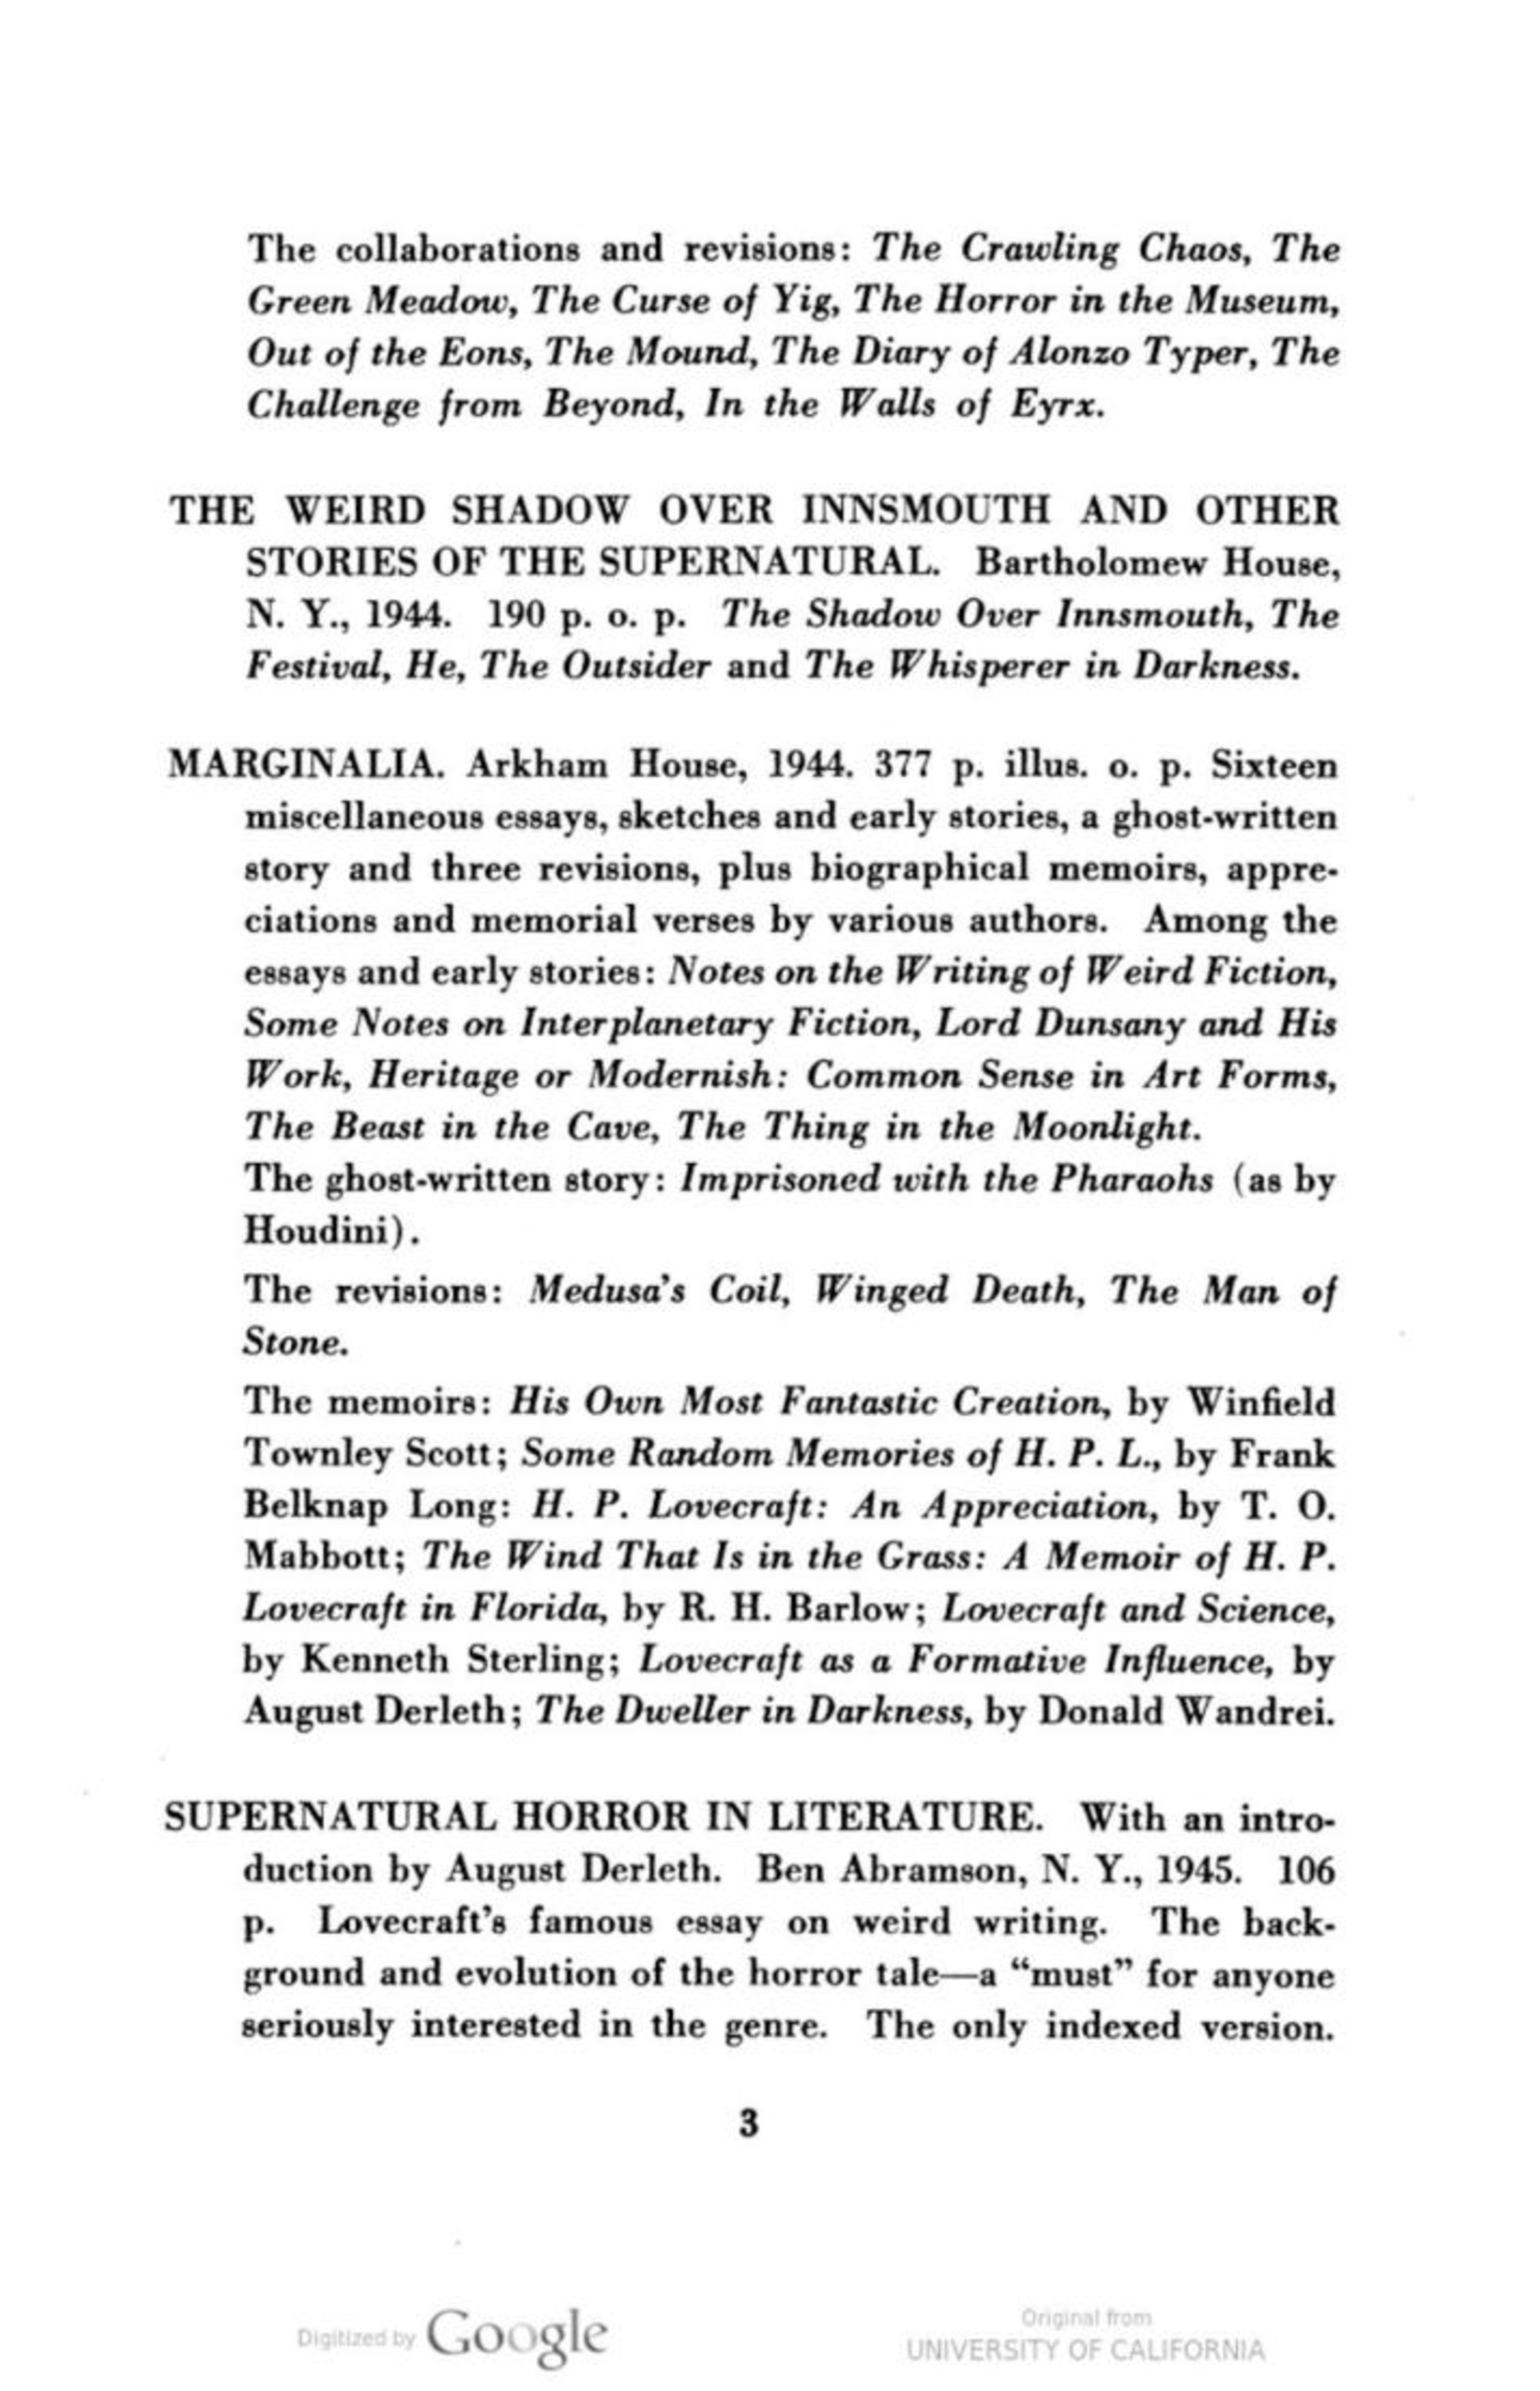 page joseph payne brennan h p lovecraft a bibliography pdf 7 spaces